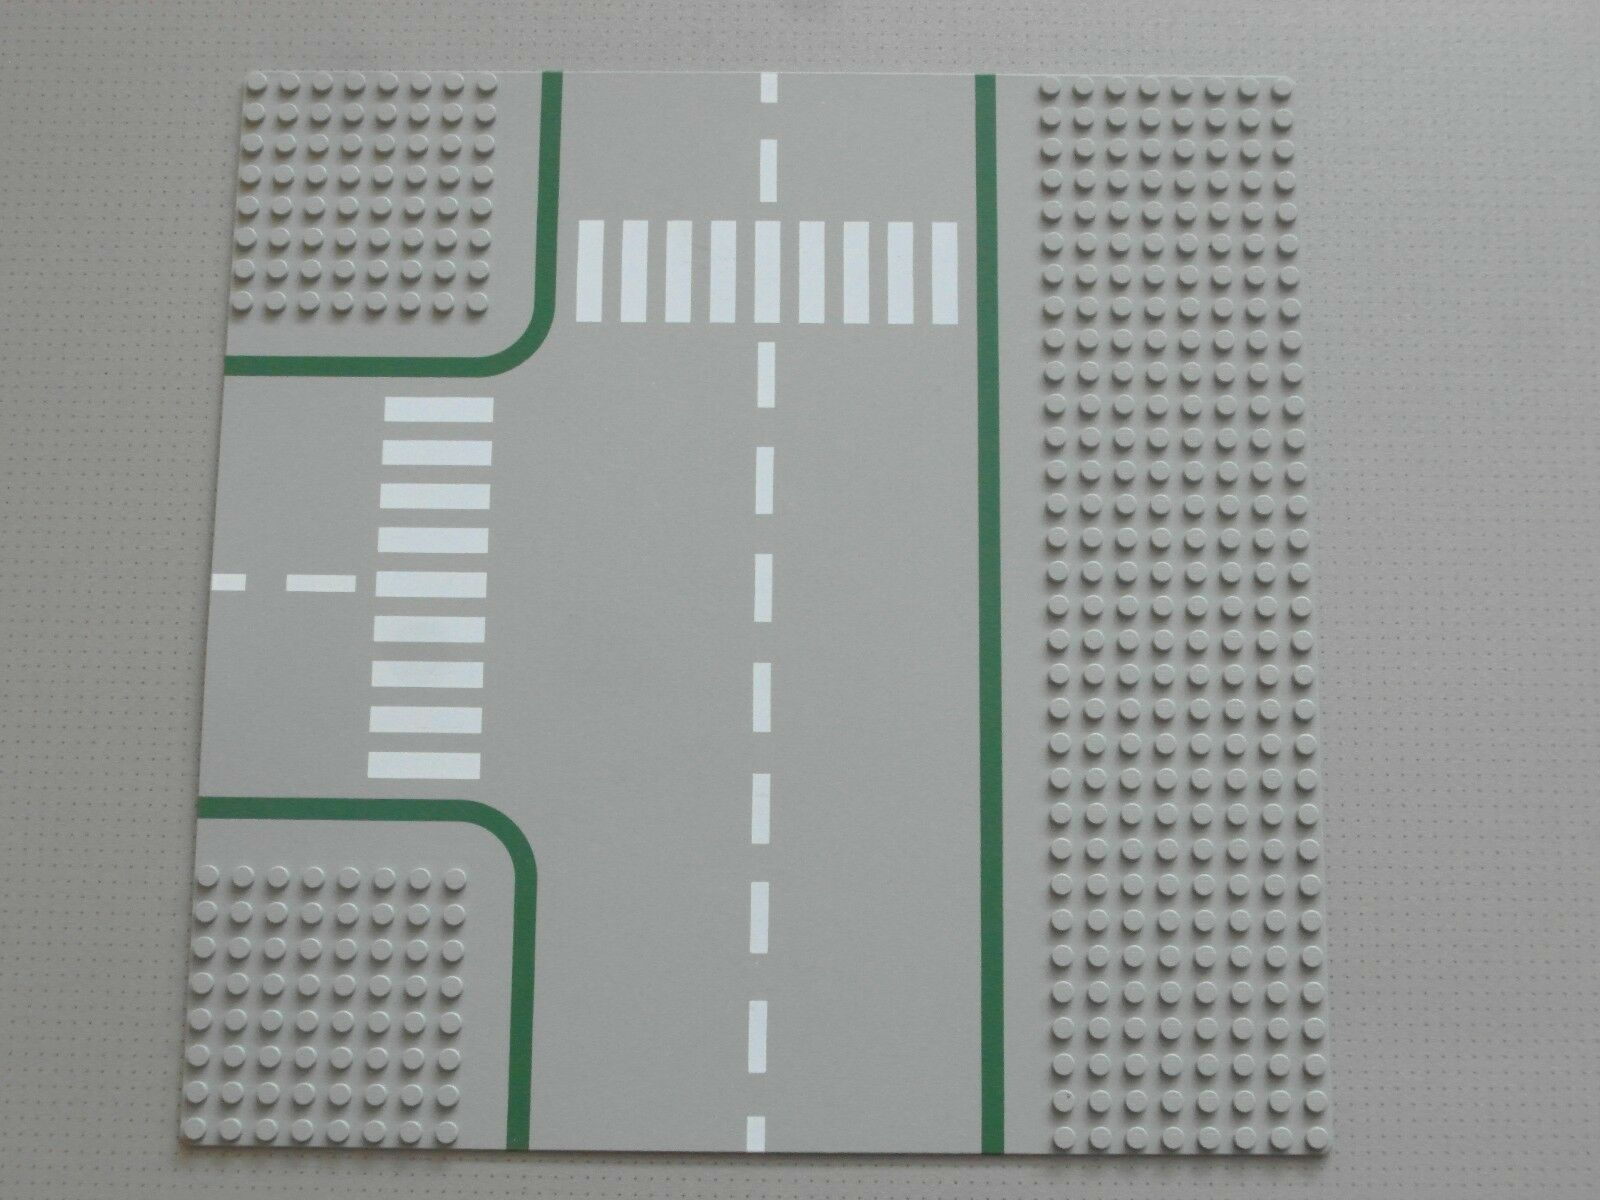 Lego Base Plate Plate Plate 32 x 32 Studs Grey Road - T-Junction - Rare From 10041 (612p01) 267950